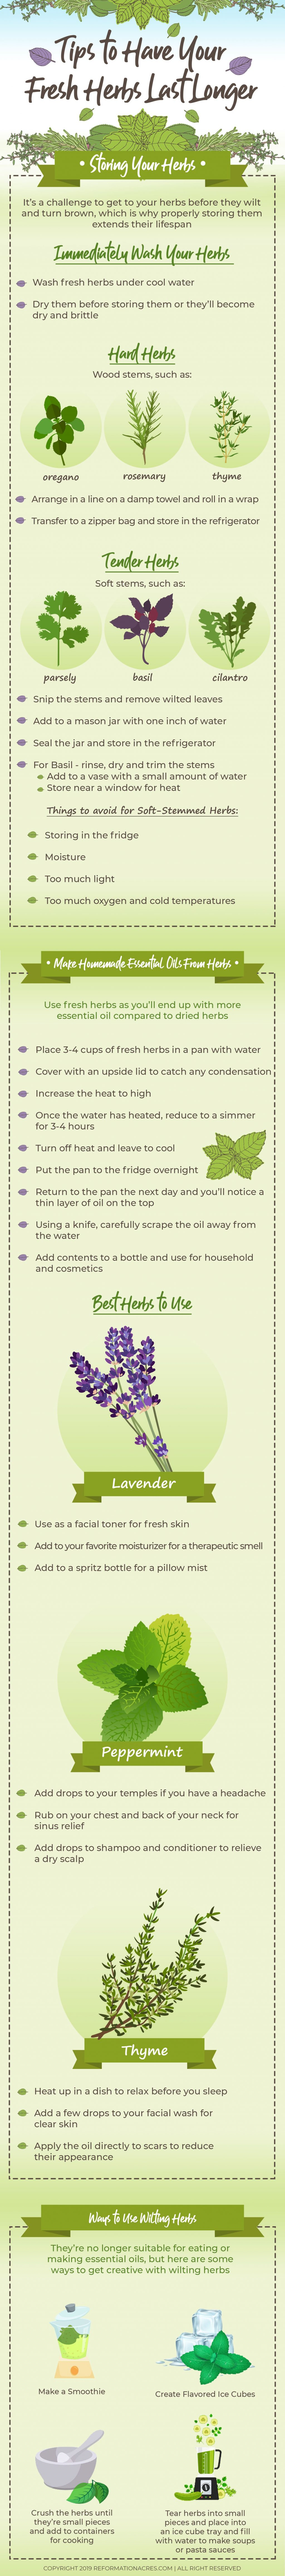 tips for fresh herbs infographic